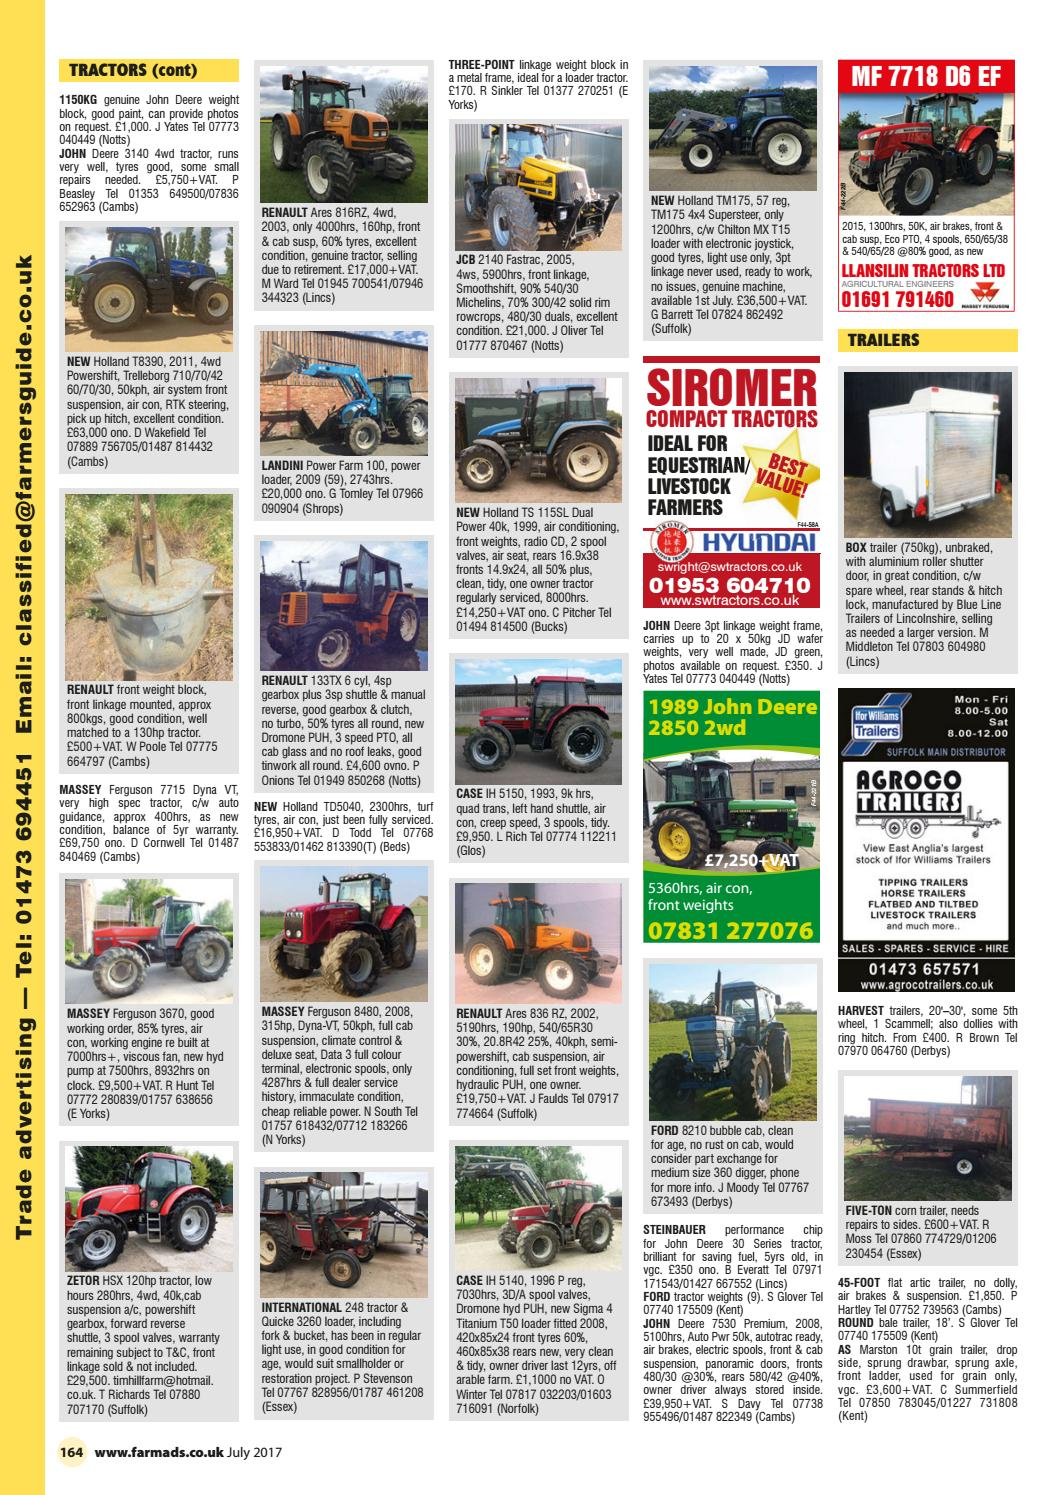 Farmers Guide July 2017 by Farmers Guide - issuu